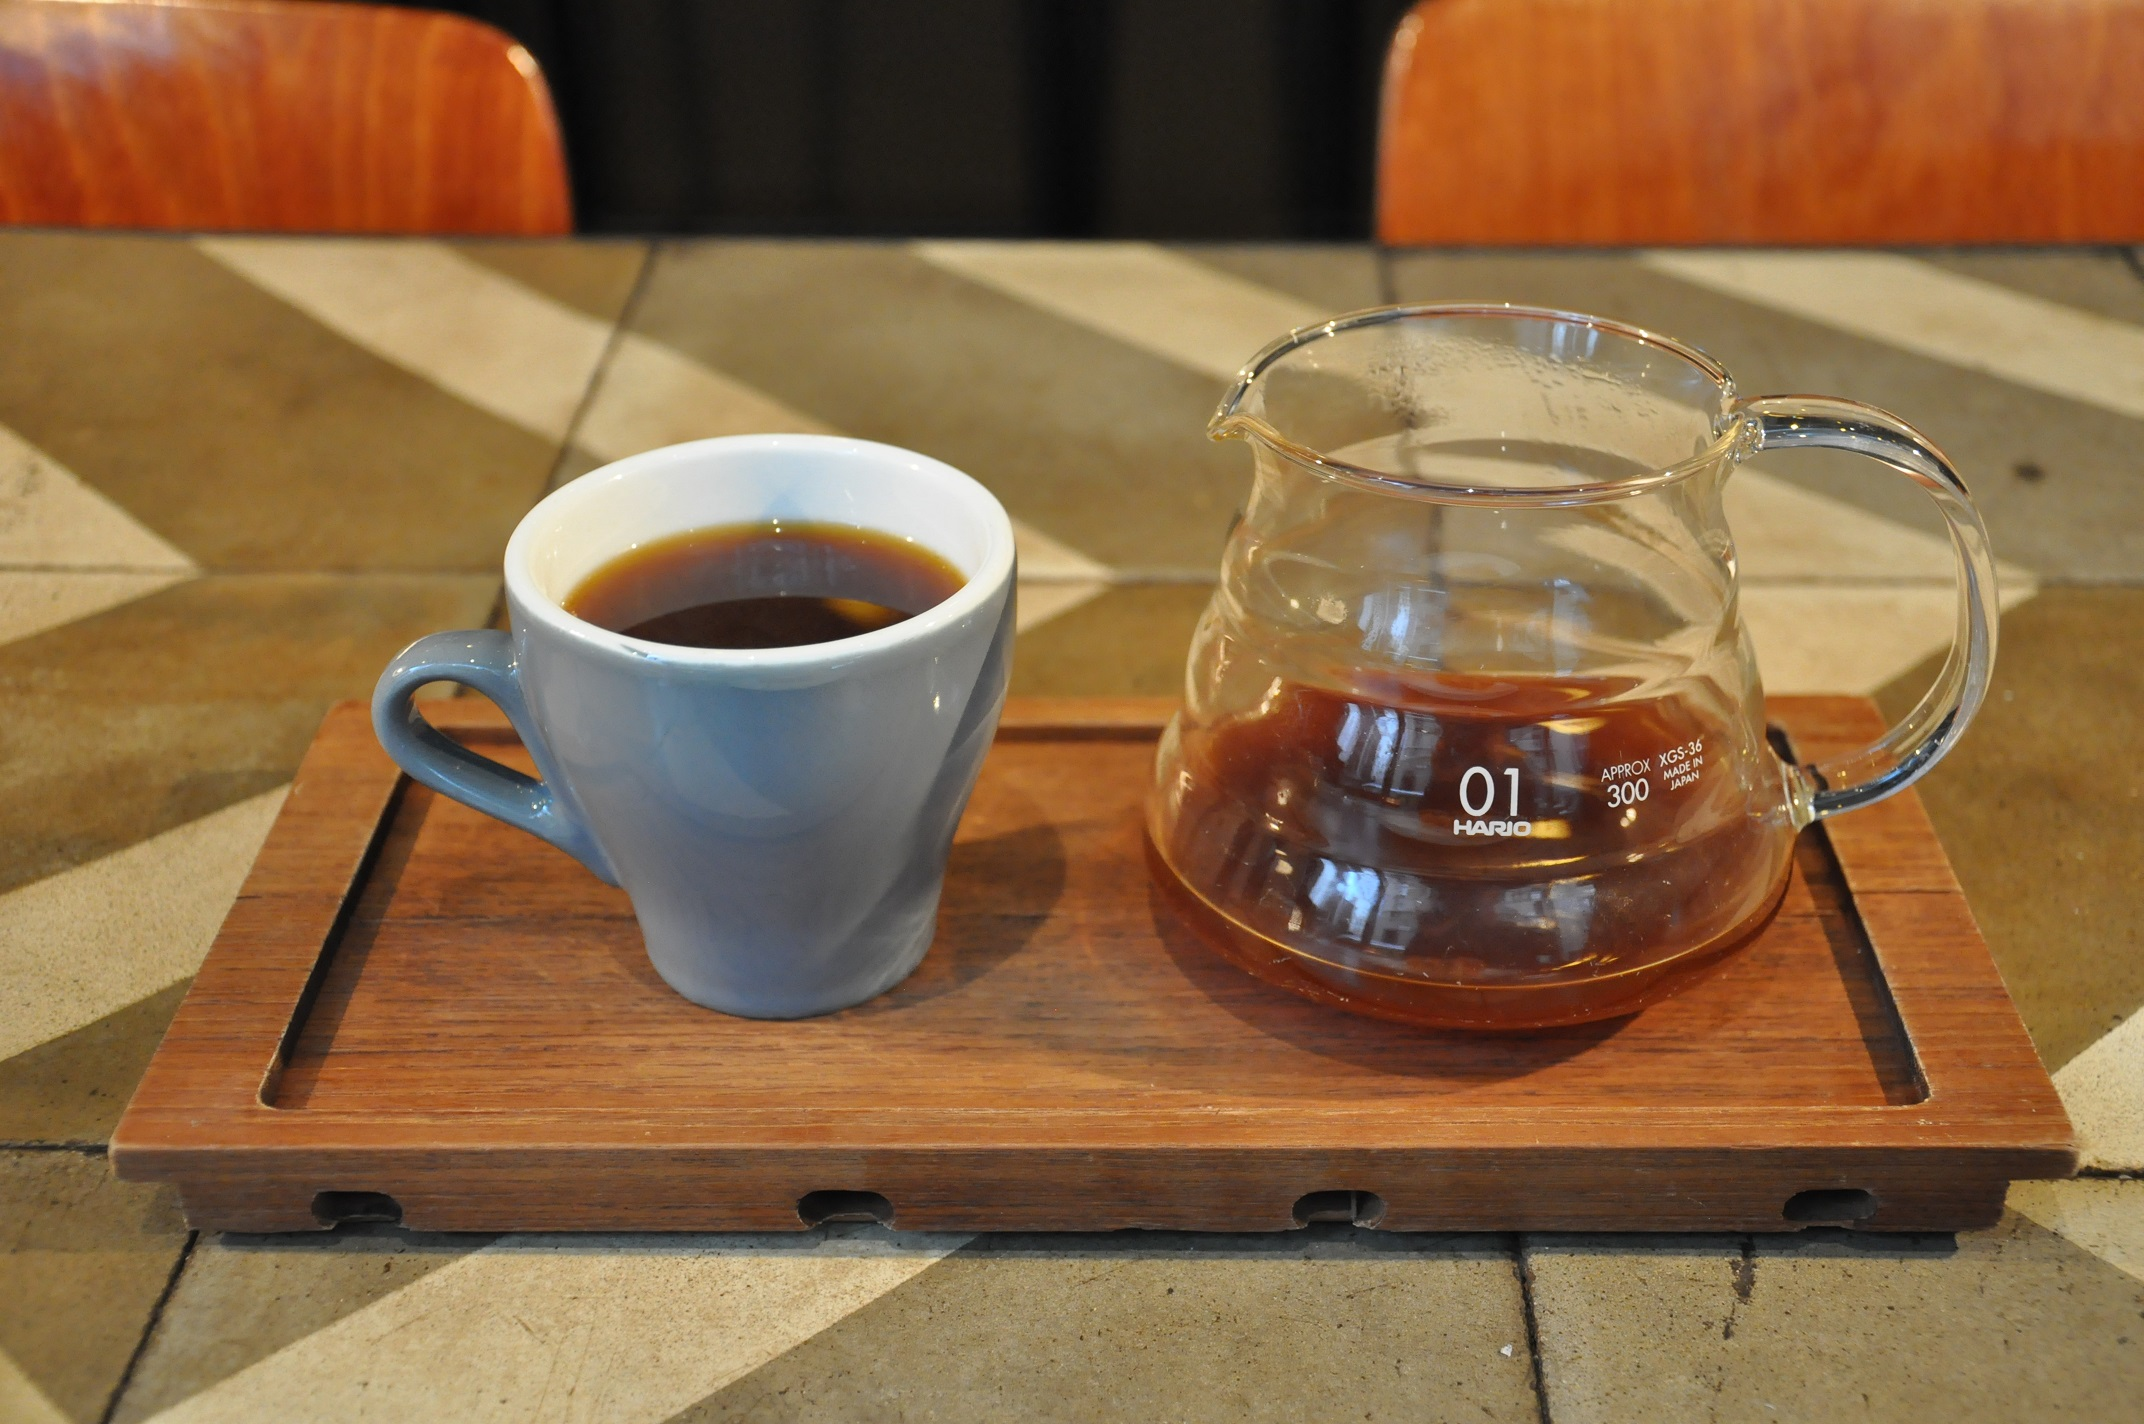 A filter coffee served in a carafe and a tulip-shaped blue cup, presented on a wooden tray.